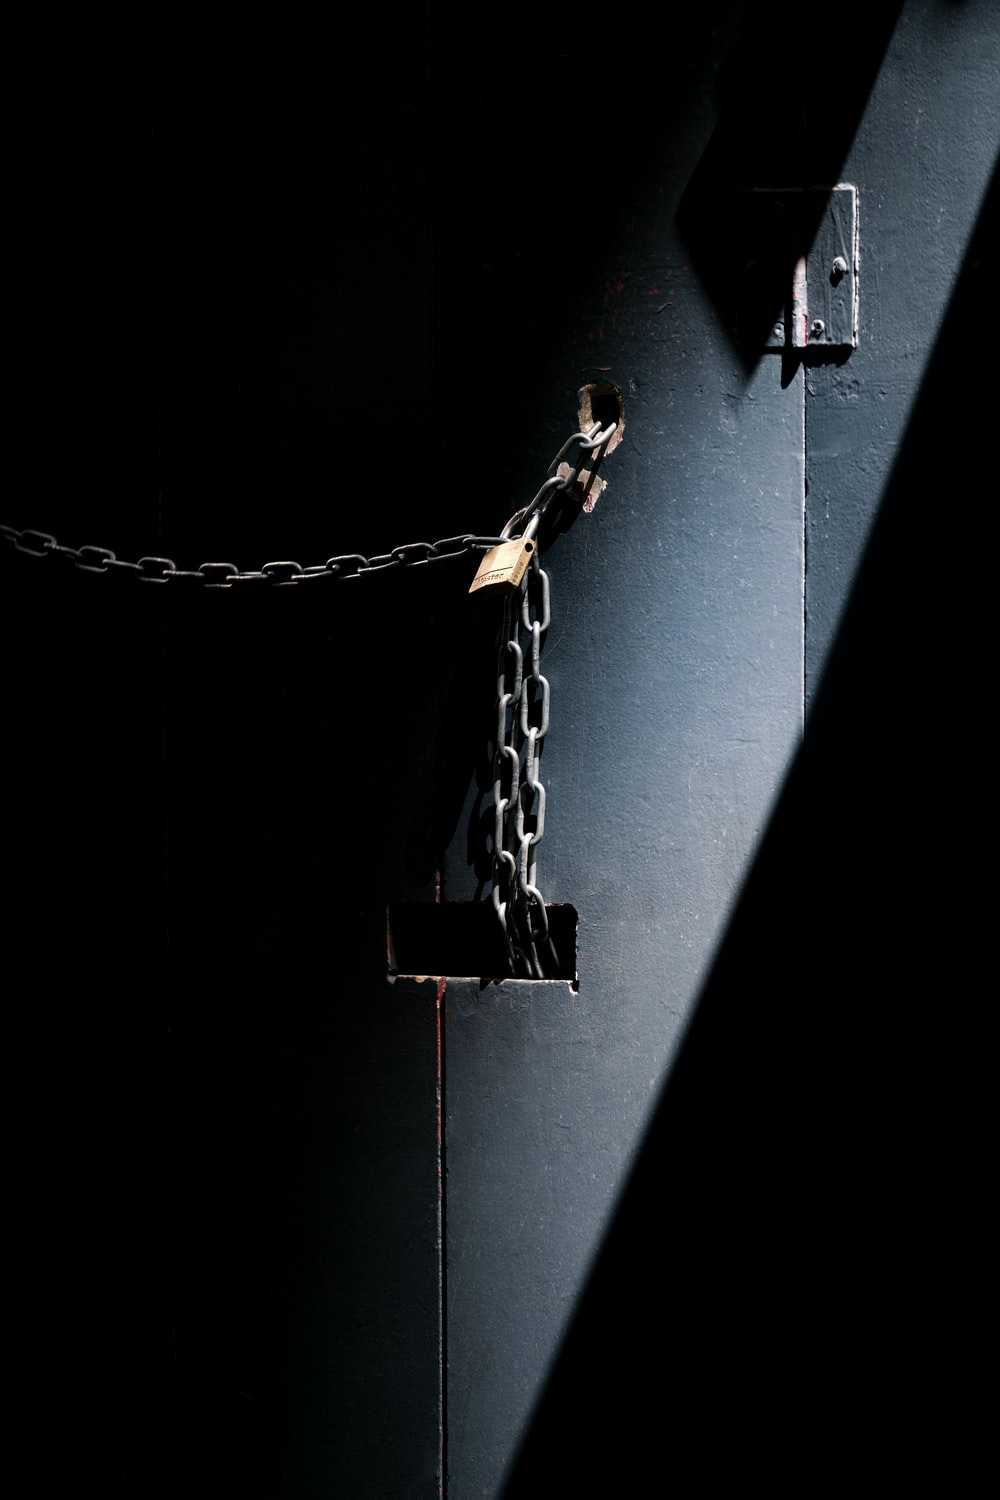 Rusty chain and a padlock close up a door in the shadows